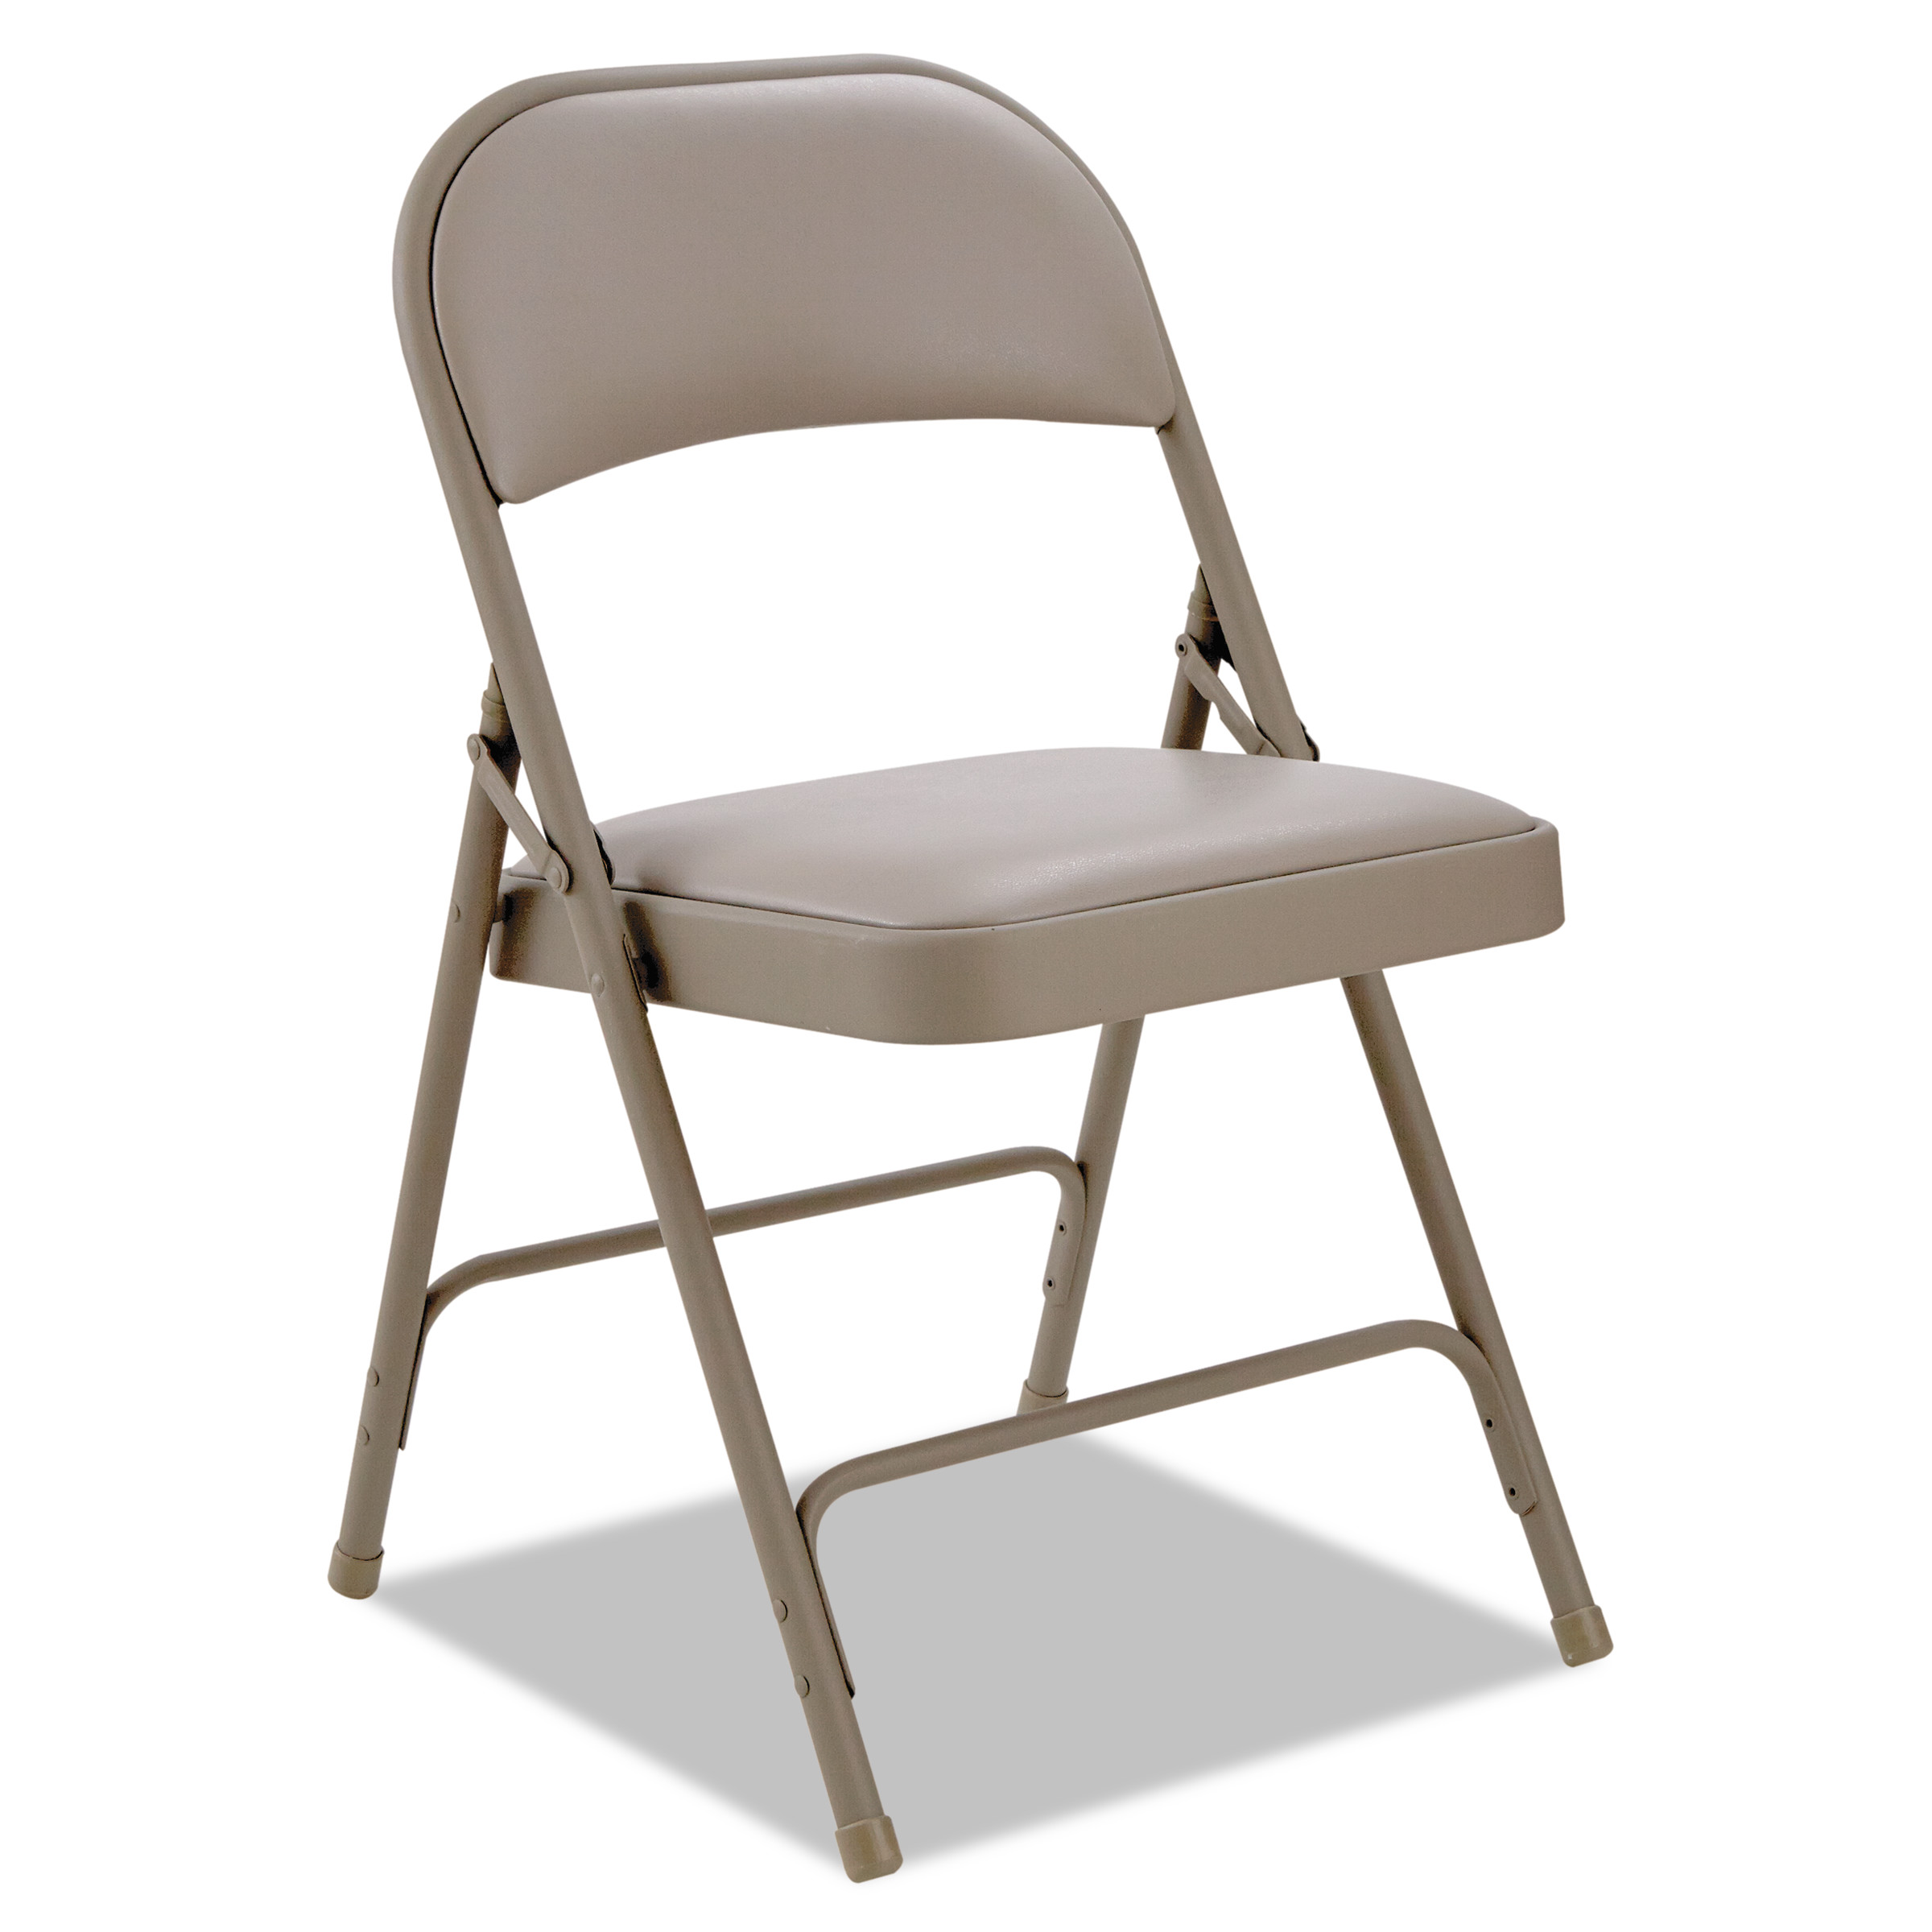 Alera Steel Folding Chair with Two-Brace Support, Padded Back/Seat, Tan, 4 Per Carton